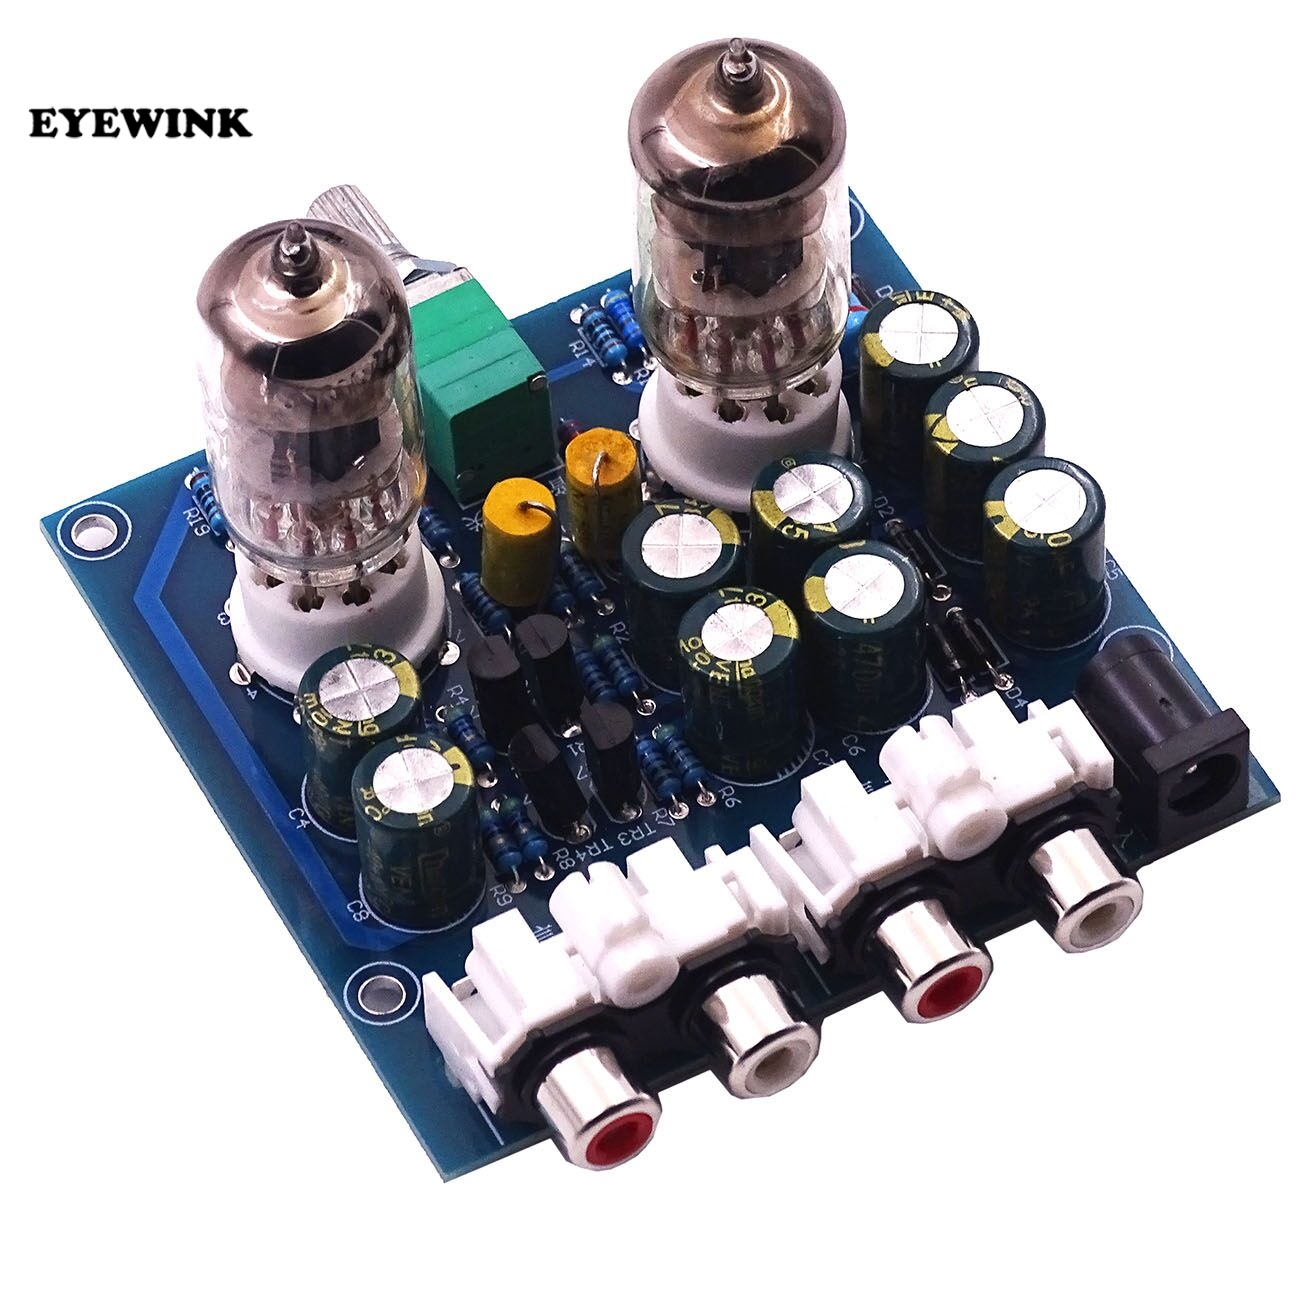 Electronic Components & Supplies Active Components Hot Sale Gpd2846a Tf Card Mp3 Decoder Board 2w Amplifier Module For Arduino Gm Power Supply Module Good Taste